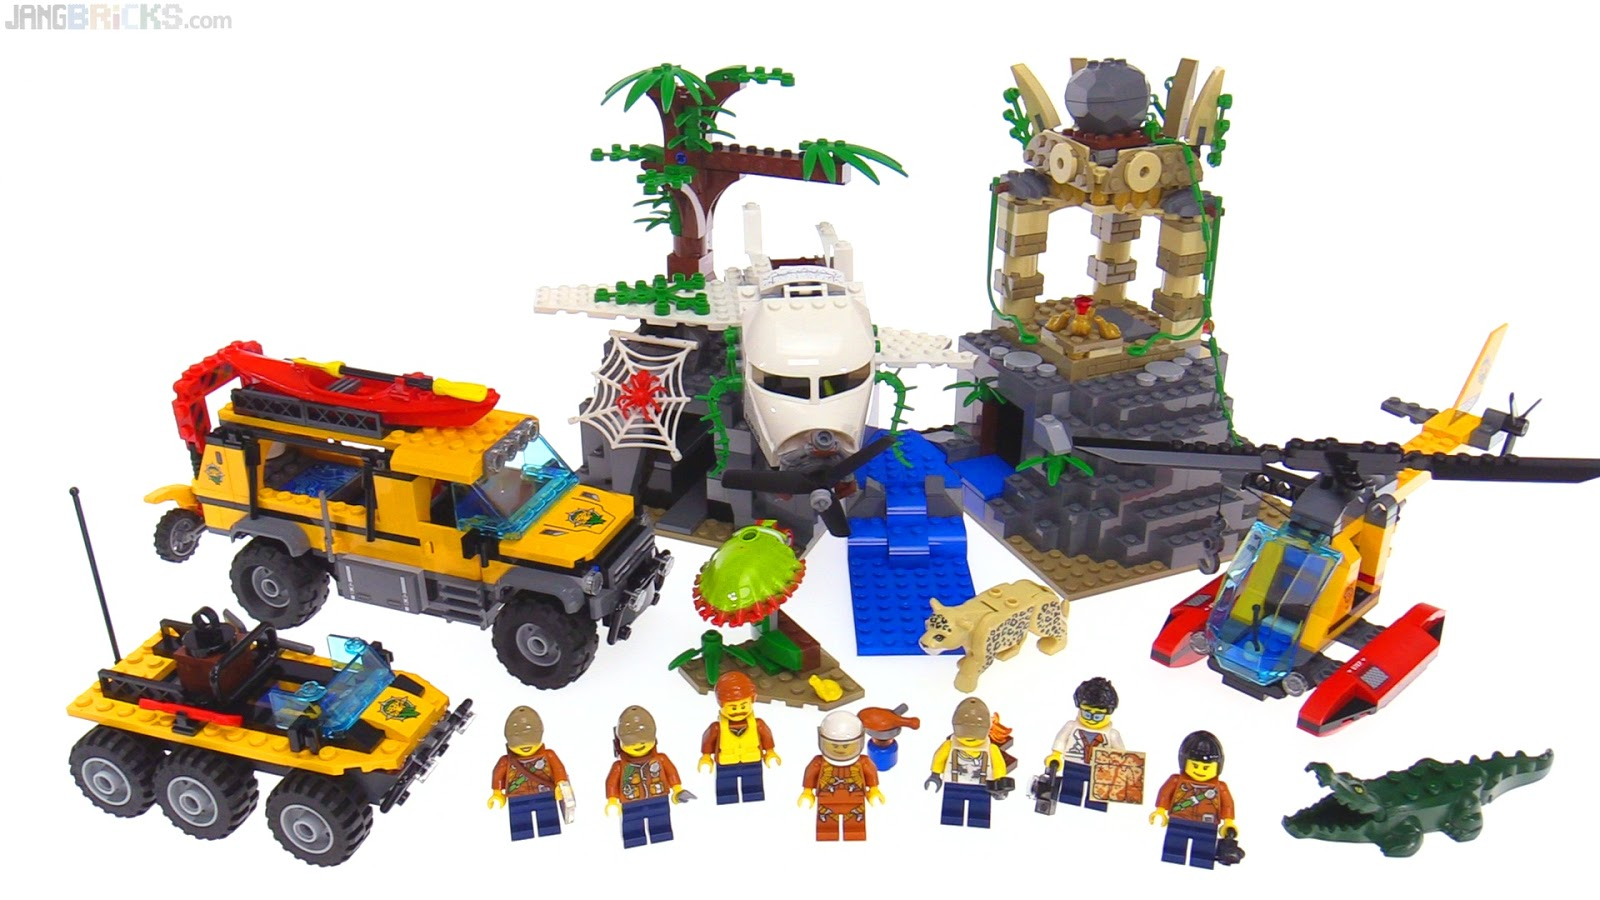 lego city helicopter rescue with Lego City Jungle Exploration Site on Watch in addition Lego City Jungle Exploration Site additionally Poster Lego City Fire moreover Research Institute Official Images further Watch.